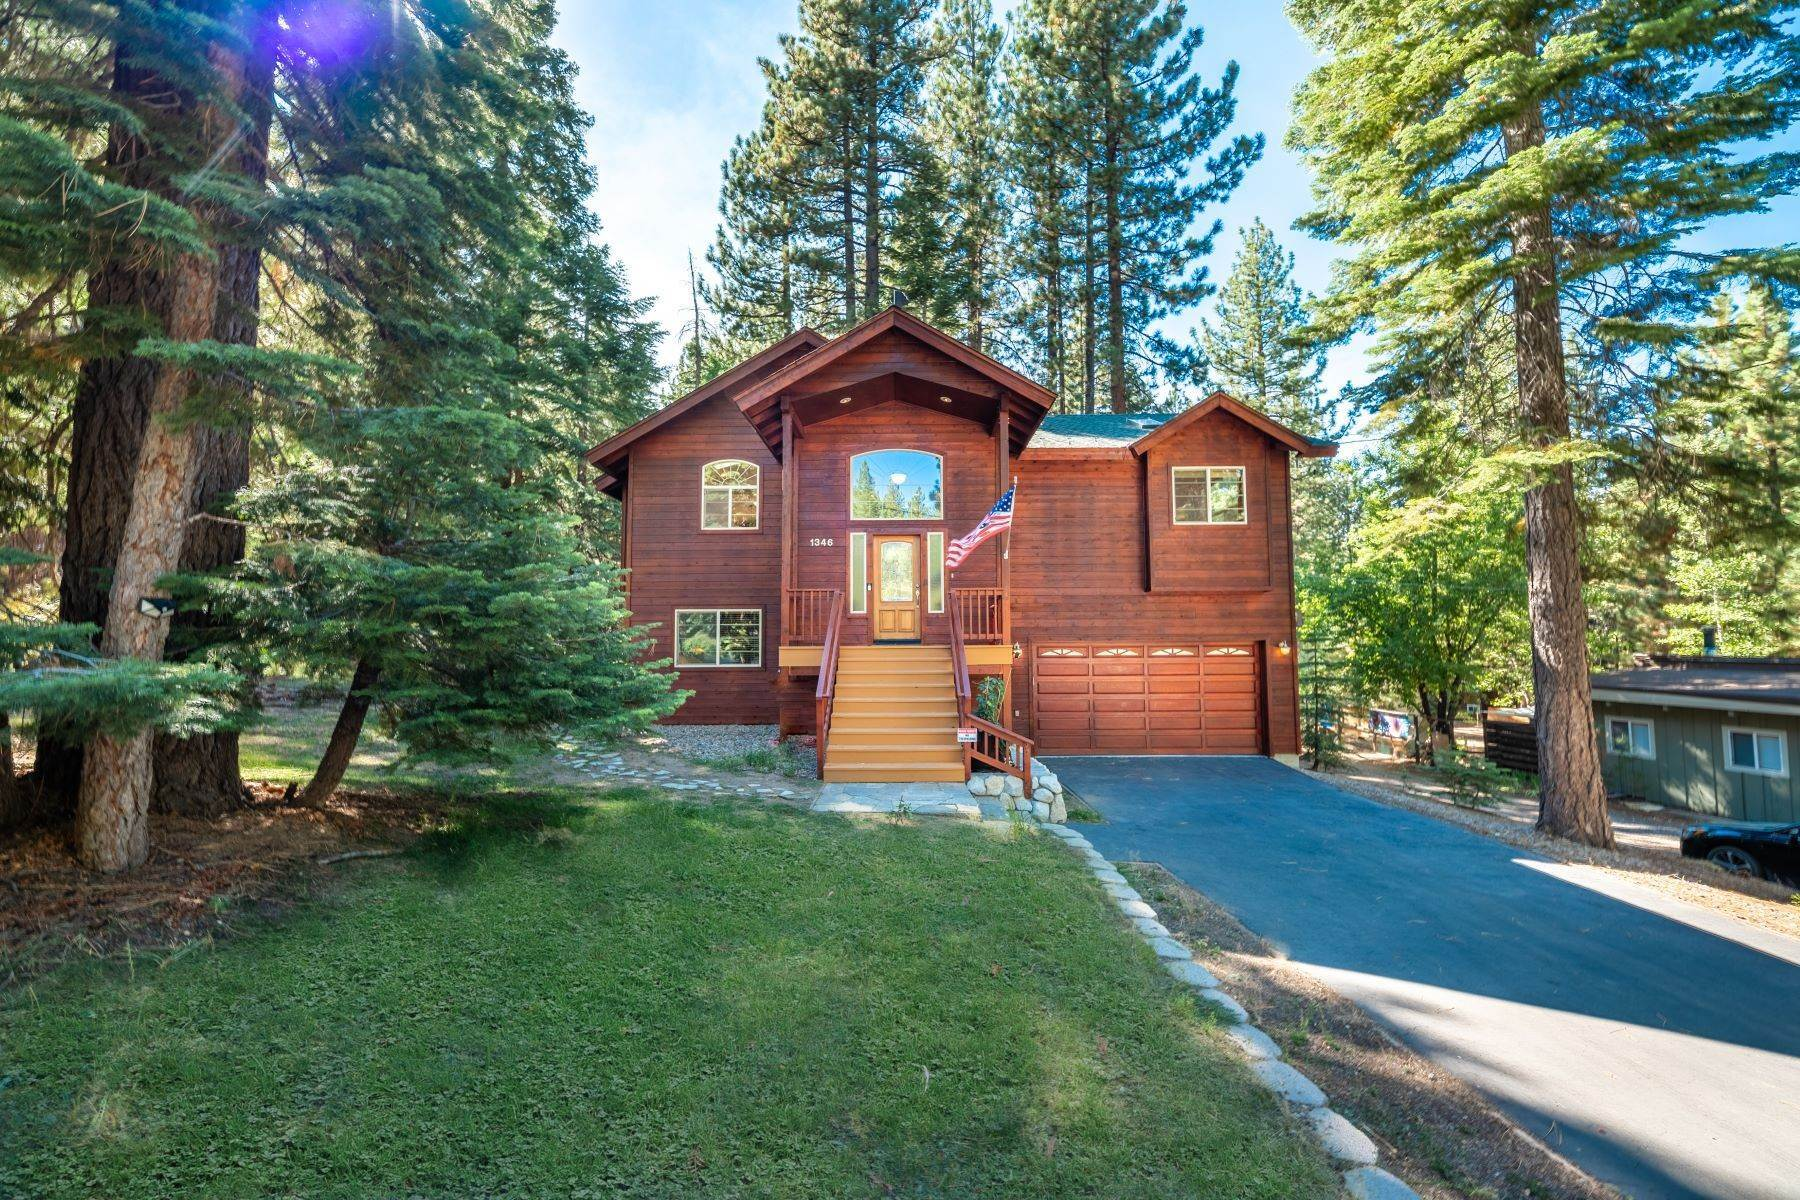 Property for Active at Beautiful Secluded Mountain Home 1346 Bonanza Avenue South Lake Tahoe, California 96150 United States